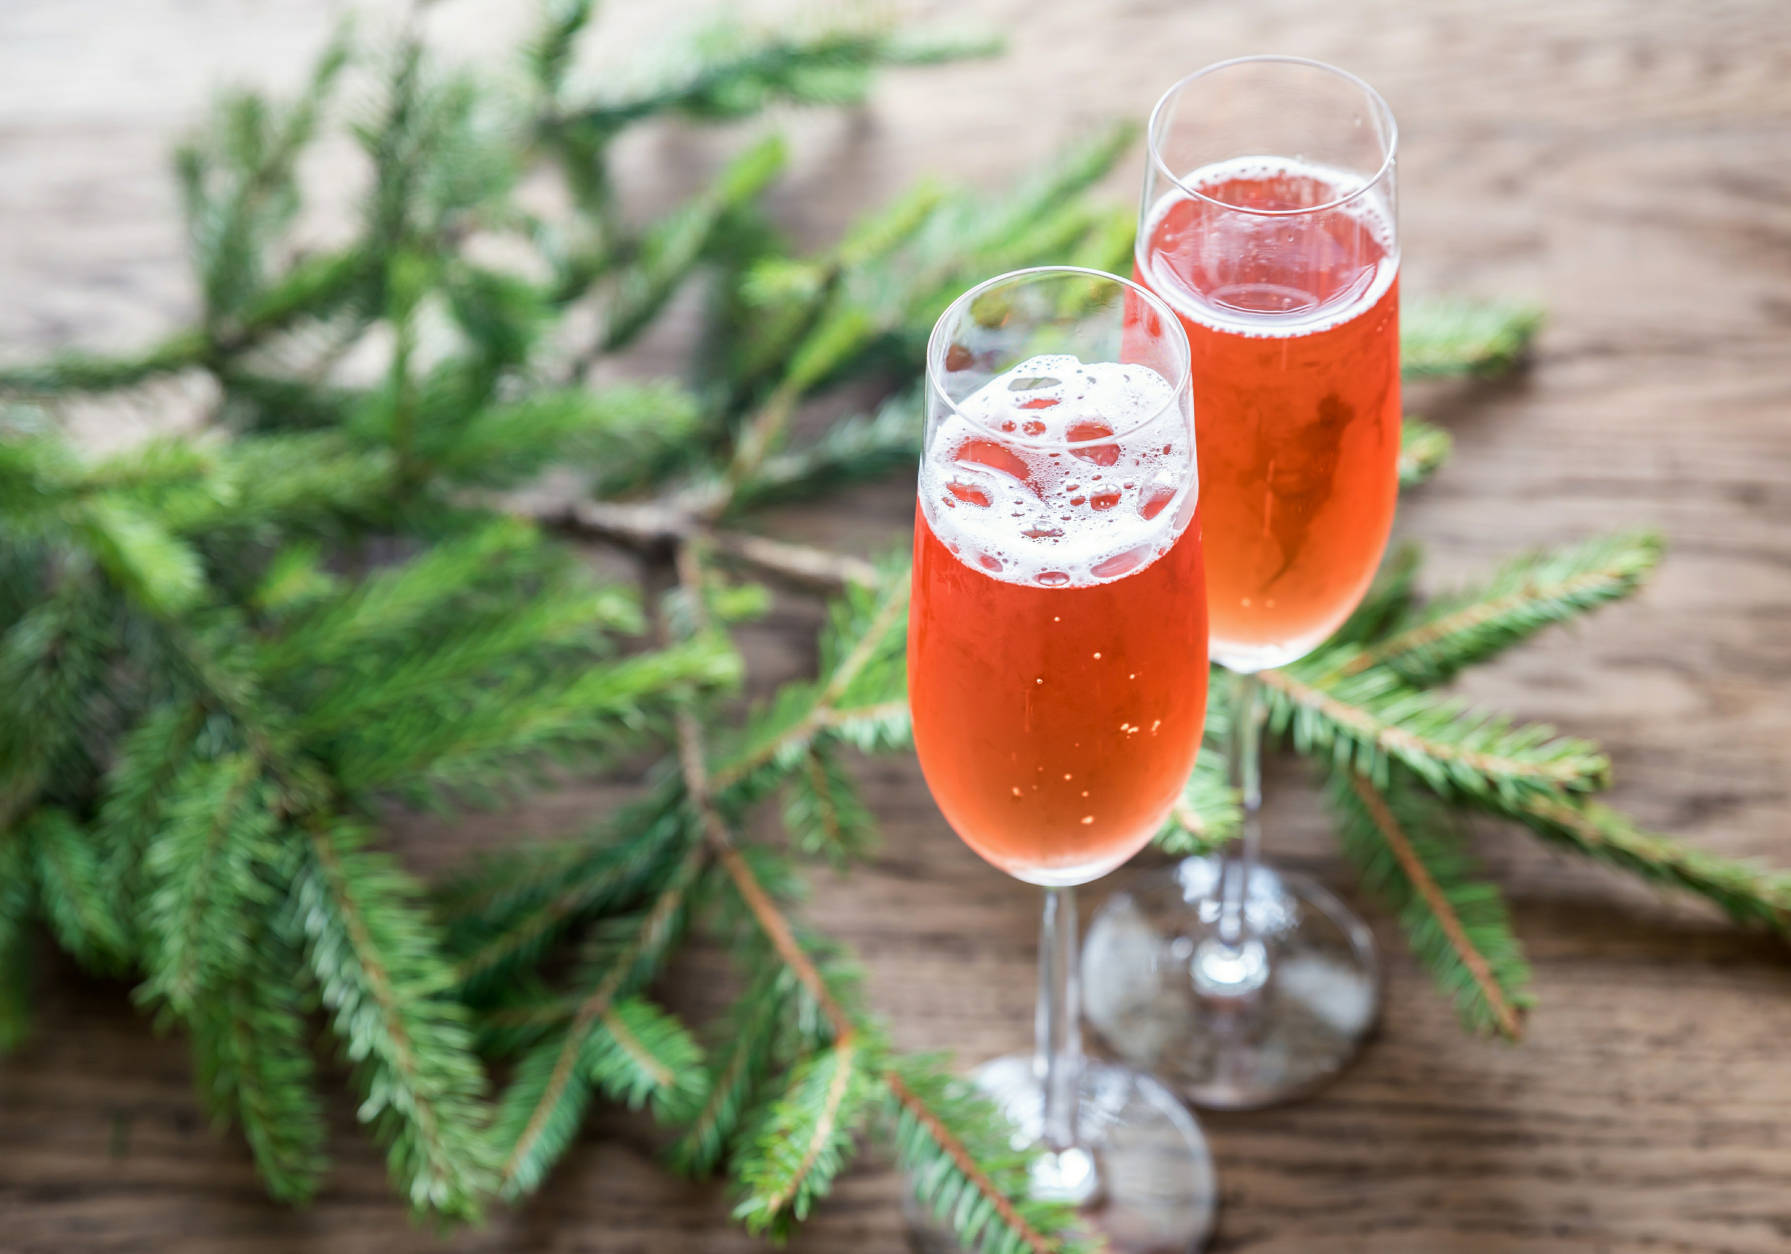 'Tis the season of sparkling, and nothing is as festive as a glass of pink bubbly to start up any holiday party. (Thinkstock)